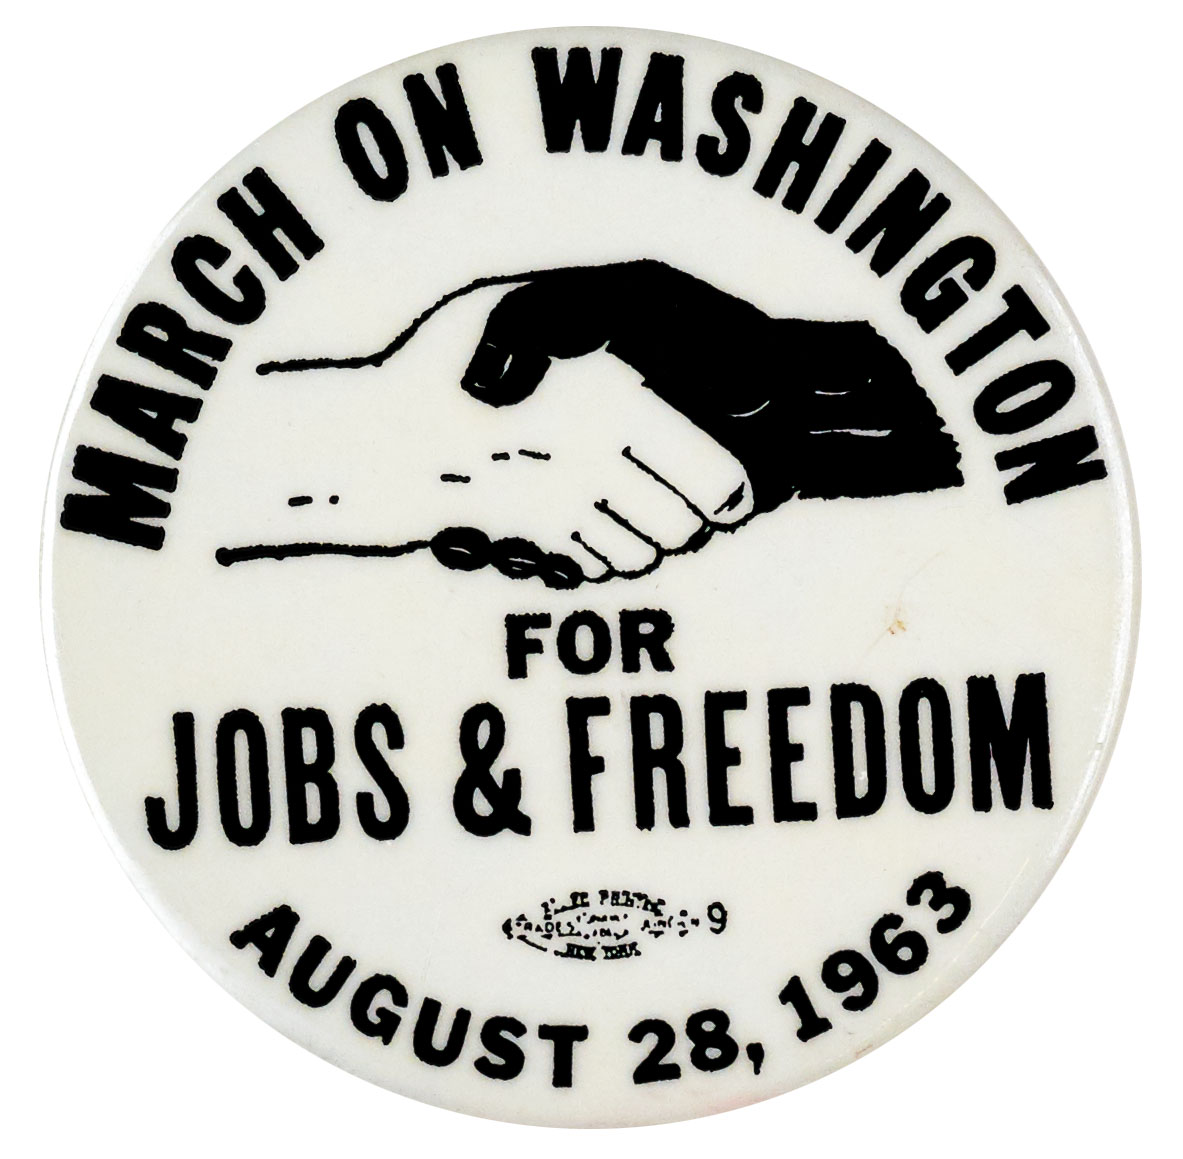 March on Washington for Jobs & Freedom button, 1963